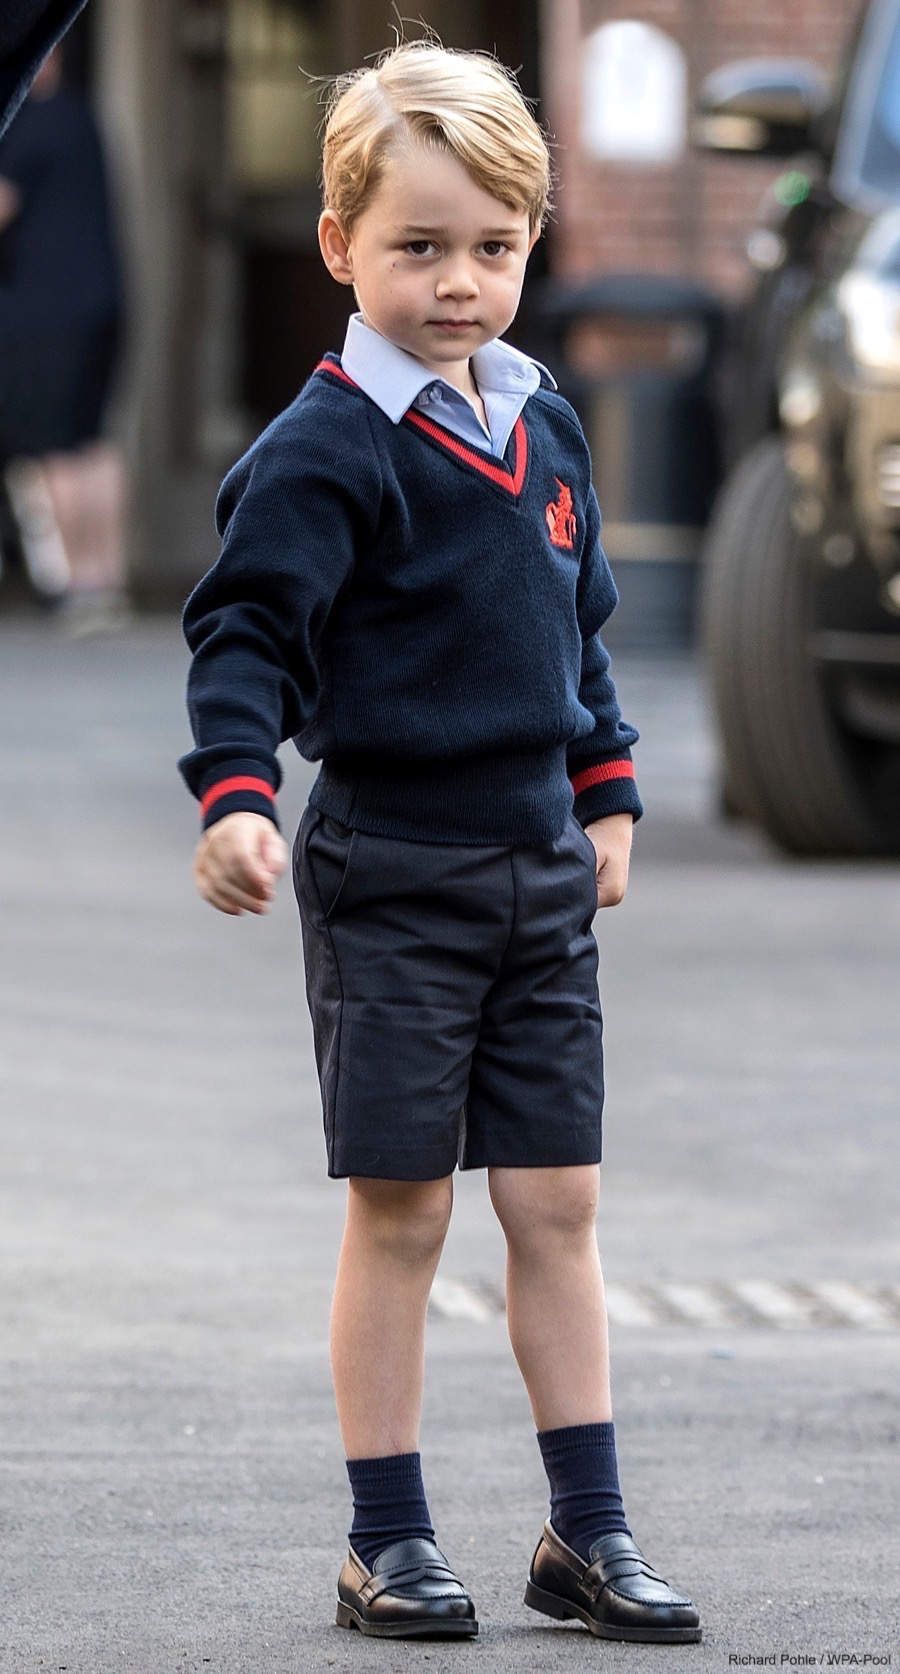 Prince George in his new school uniform